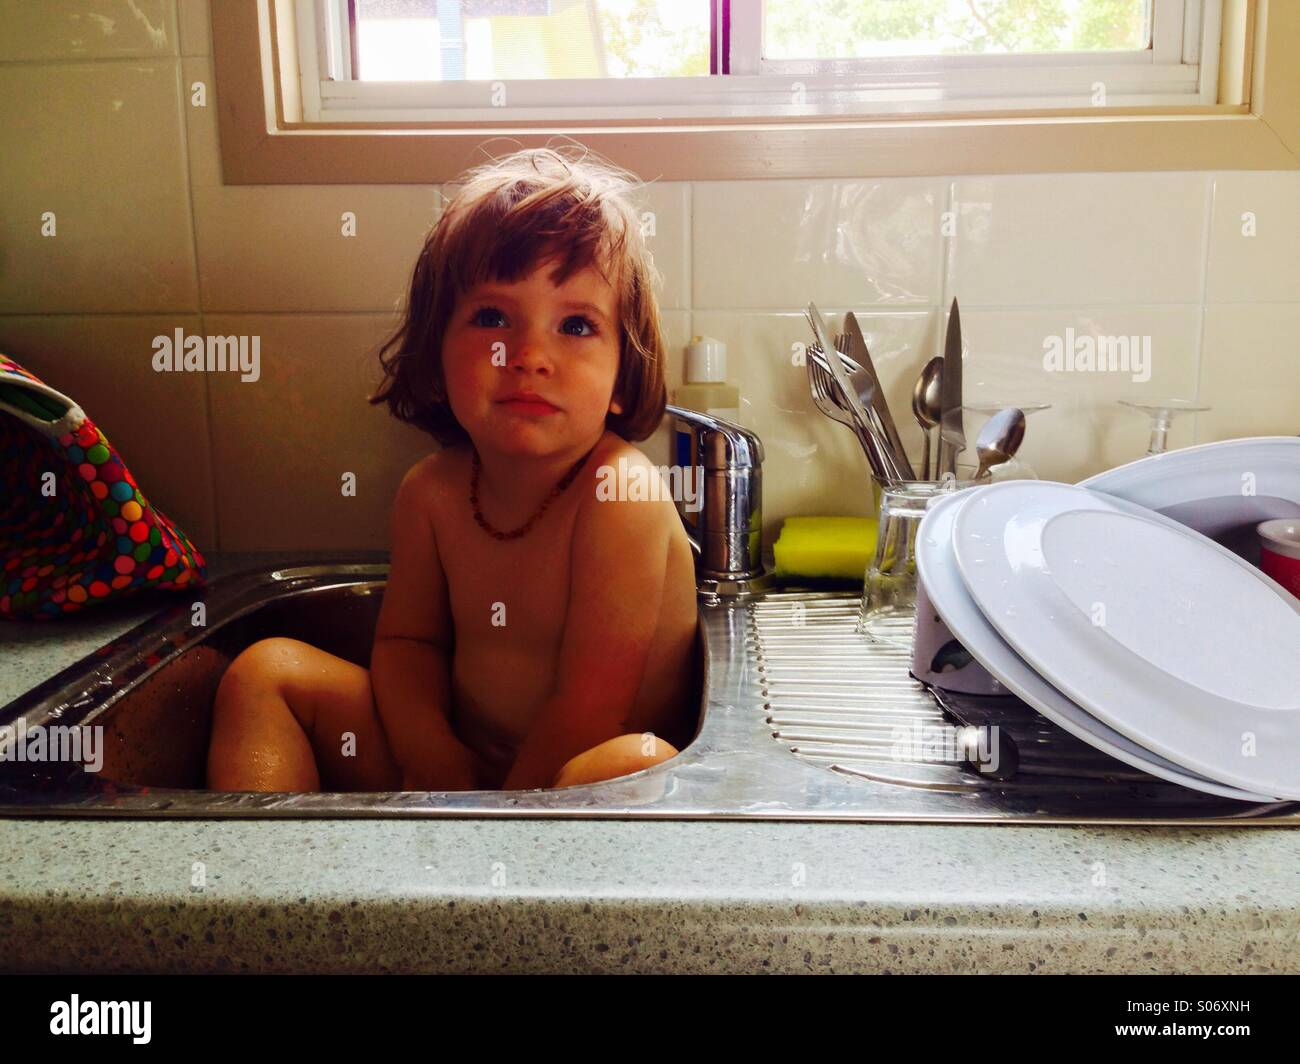 Bath time in the kitchen sink - Stock Image